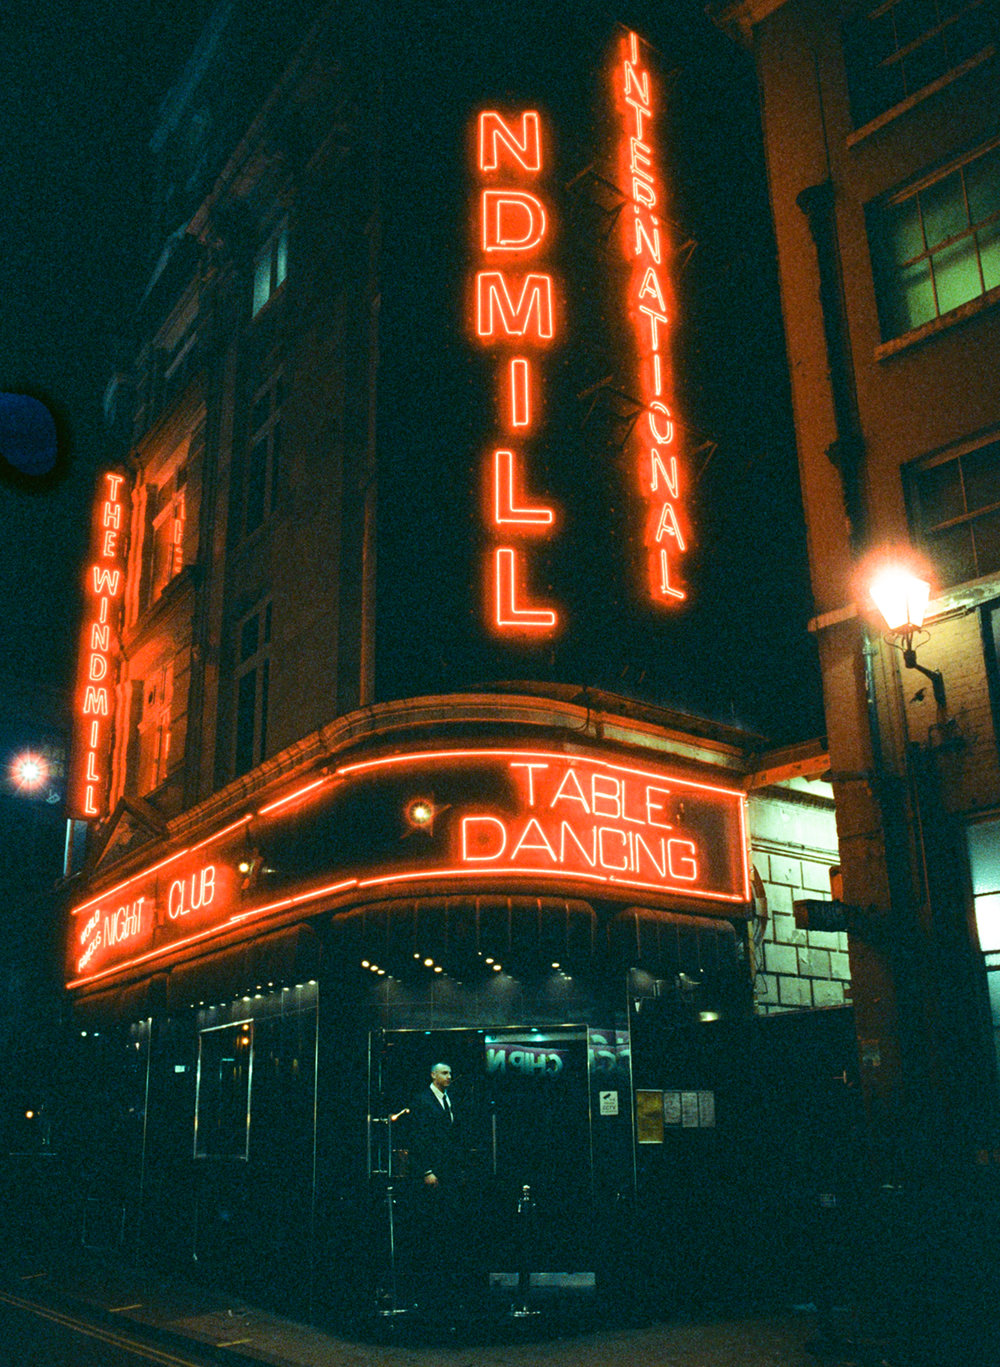 The Windmill - Soho, London. CineStill 800t